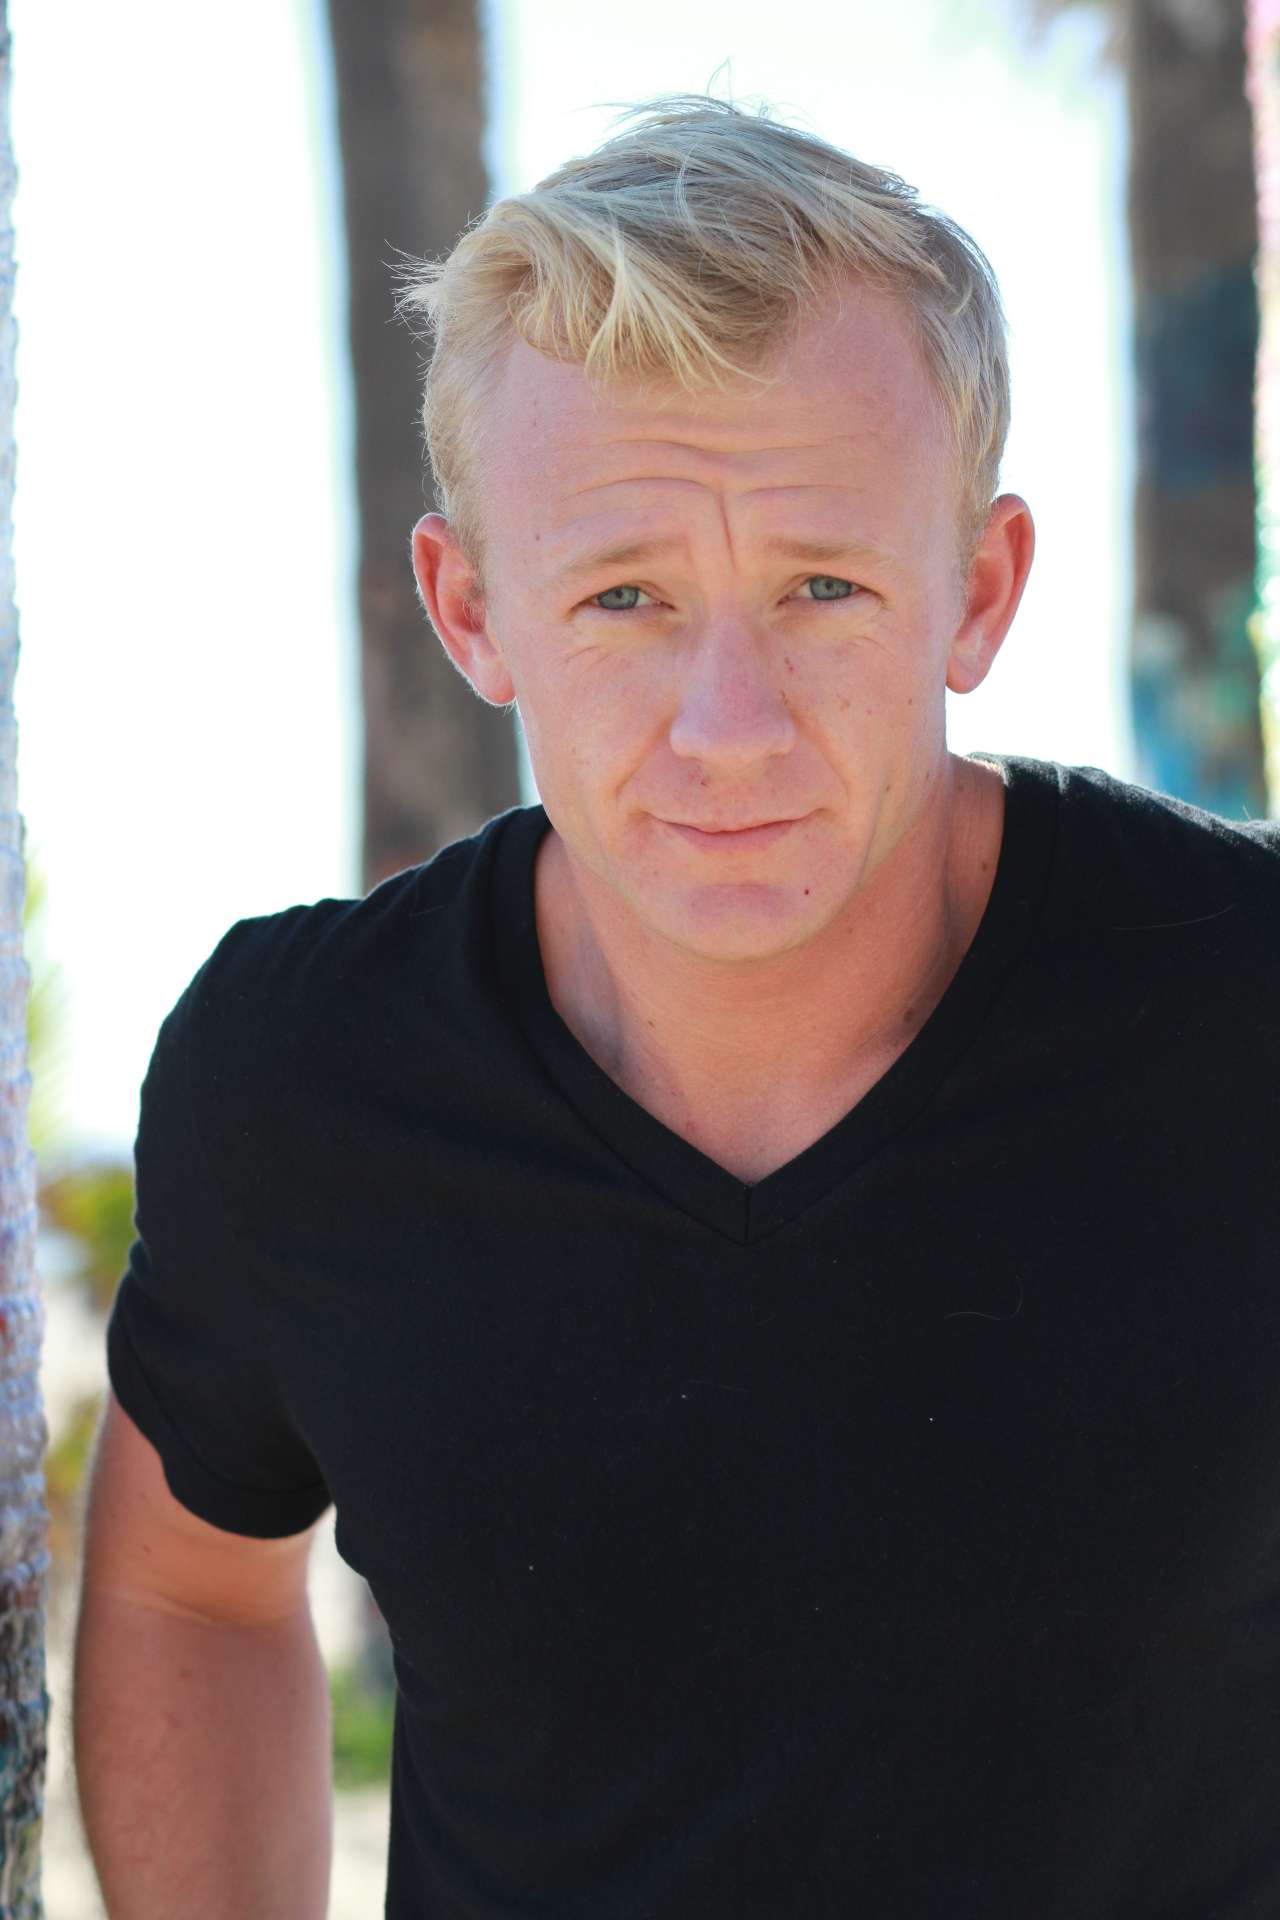 Headshot in Venice, California